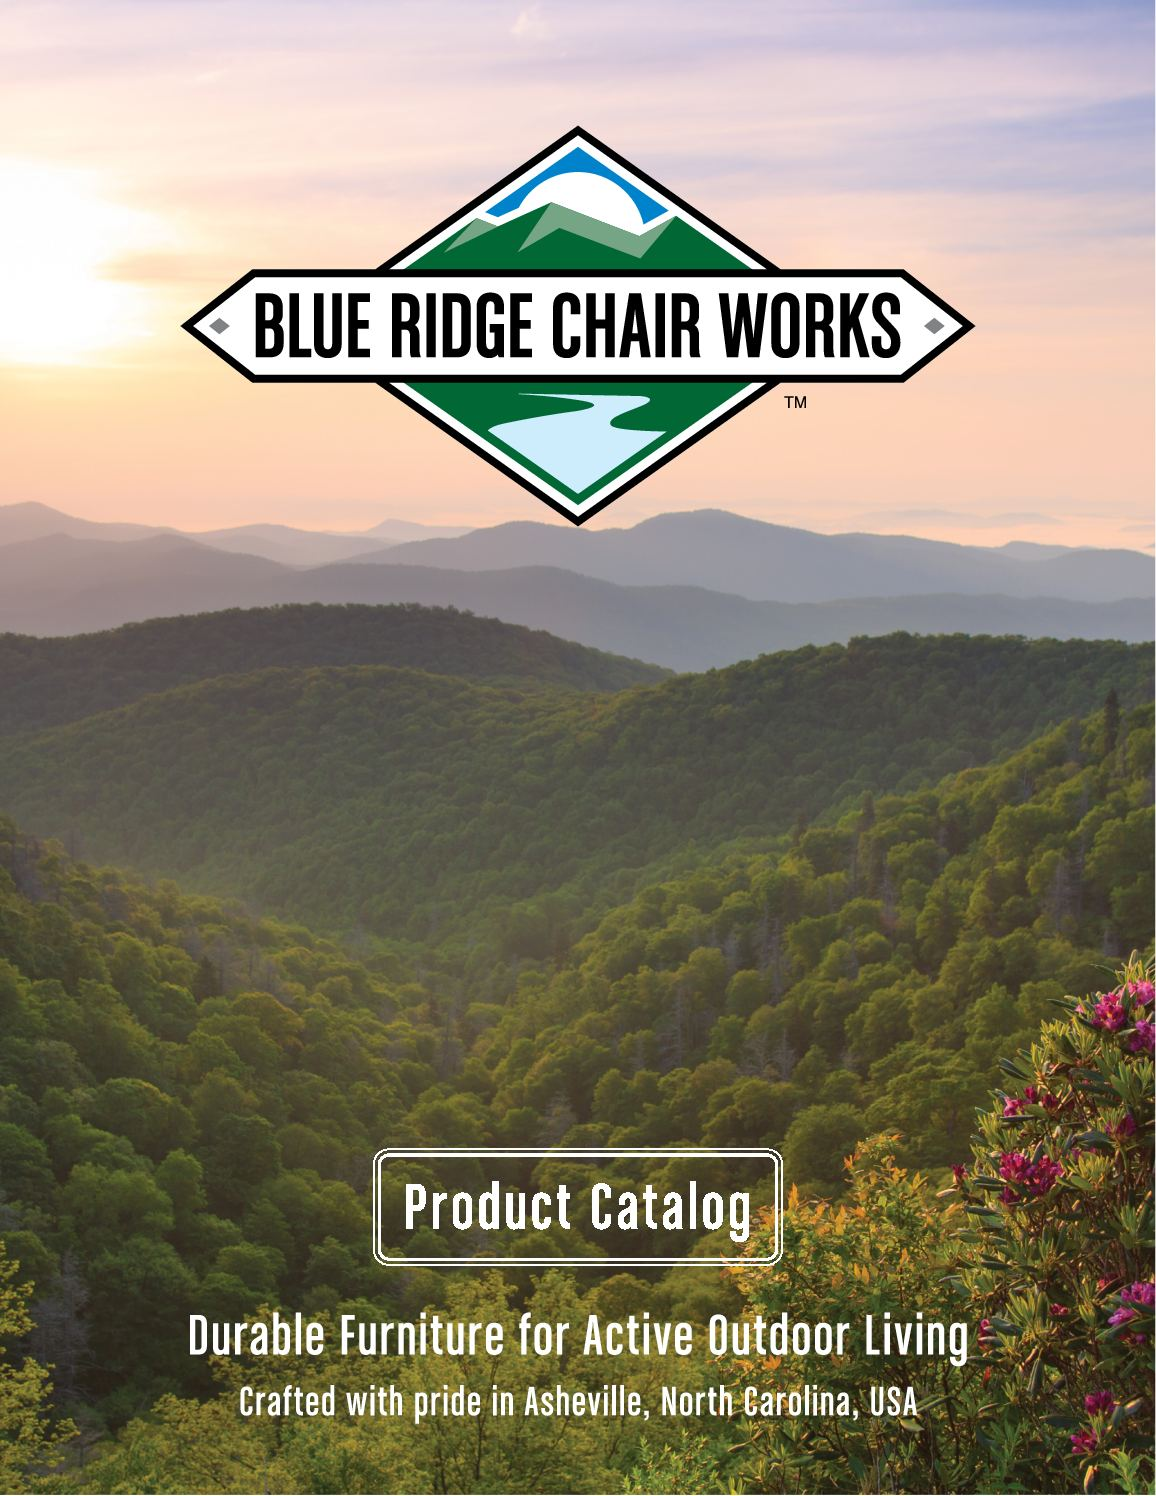 Calaméo   2018 Blue Ridge Chair Works Catalog